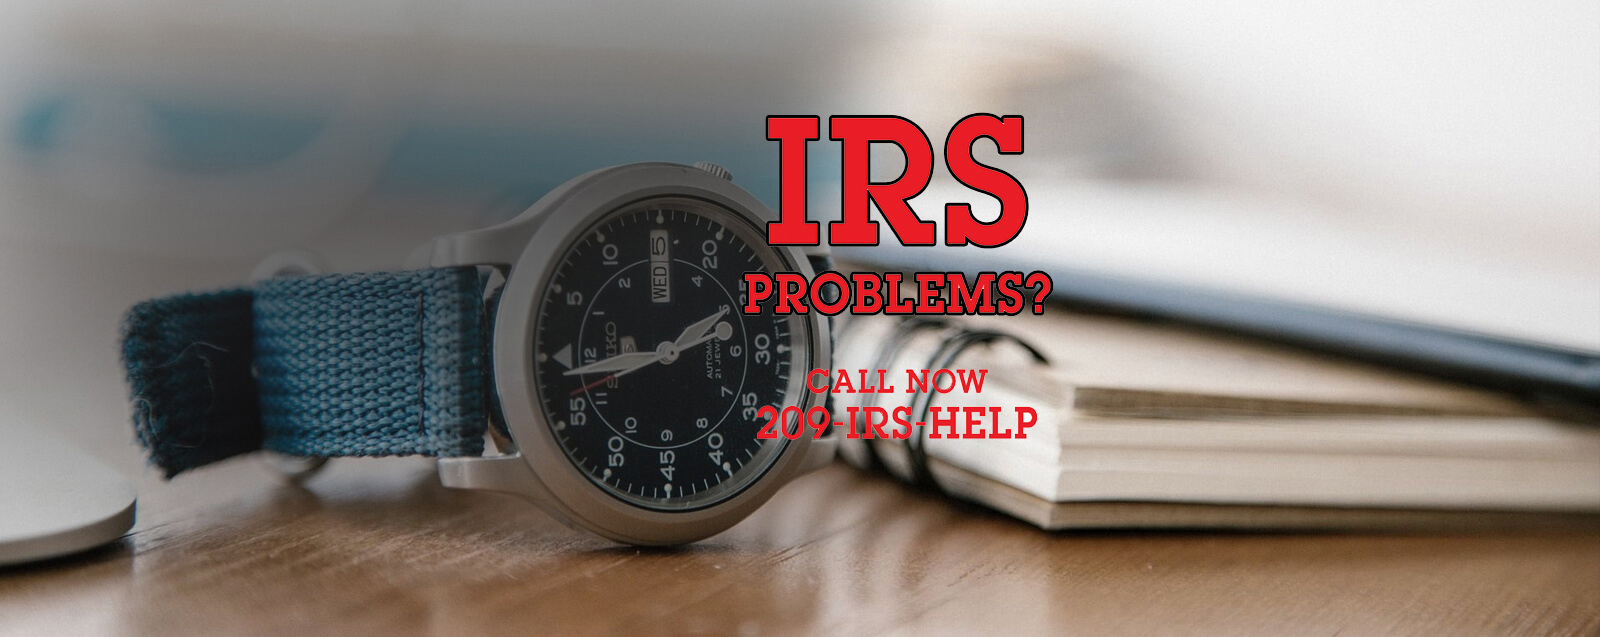 IRS Problems?